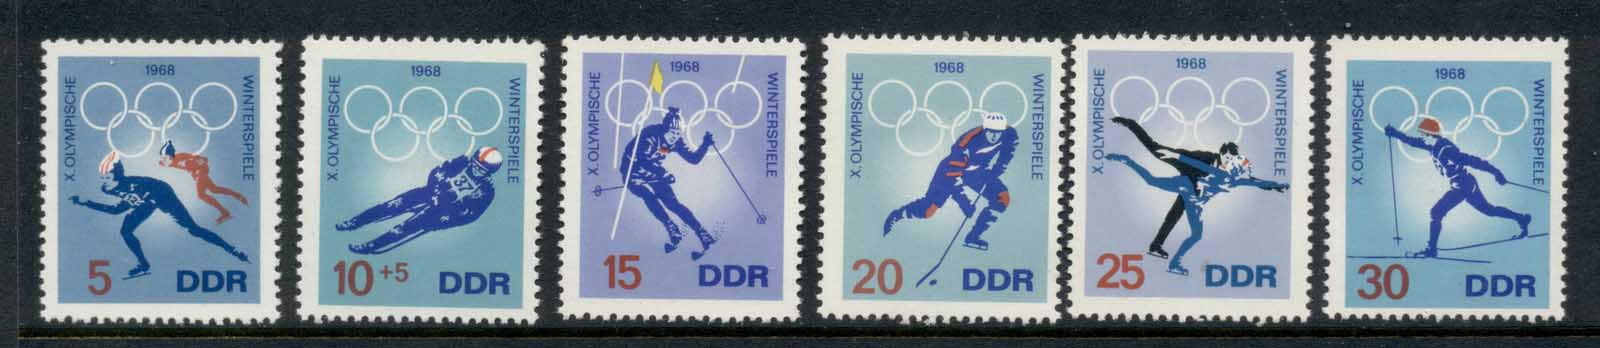 Germany DDR 1968 Winter Olympics Grenoble MLH